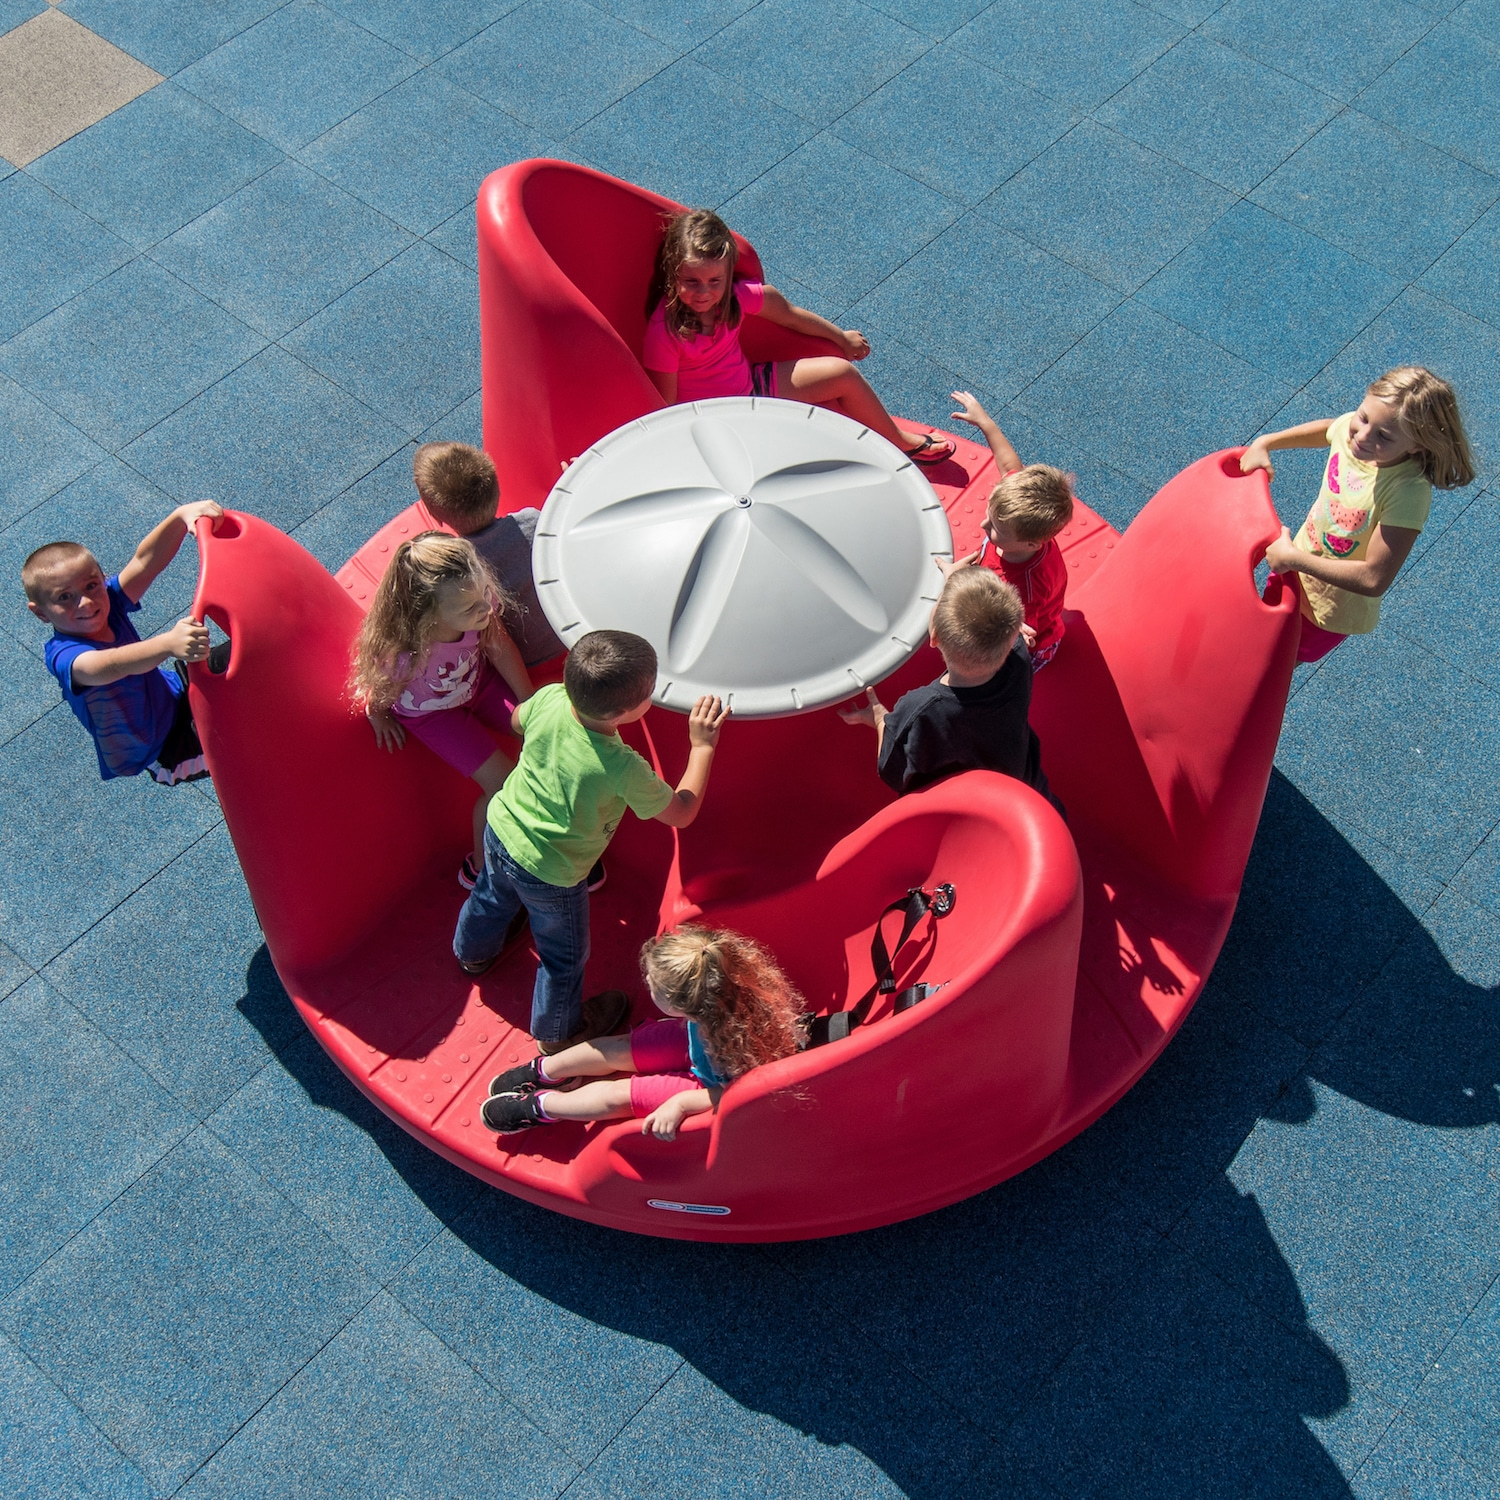 Children laughing and playing on a playground spinner.